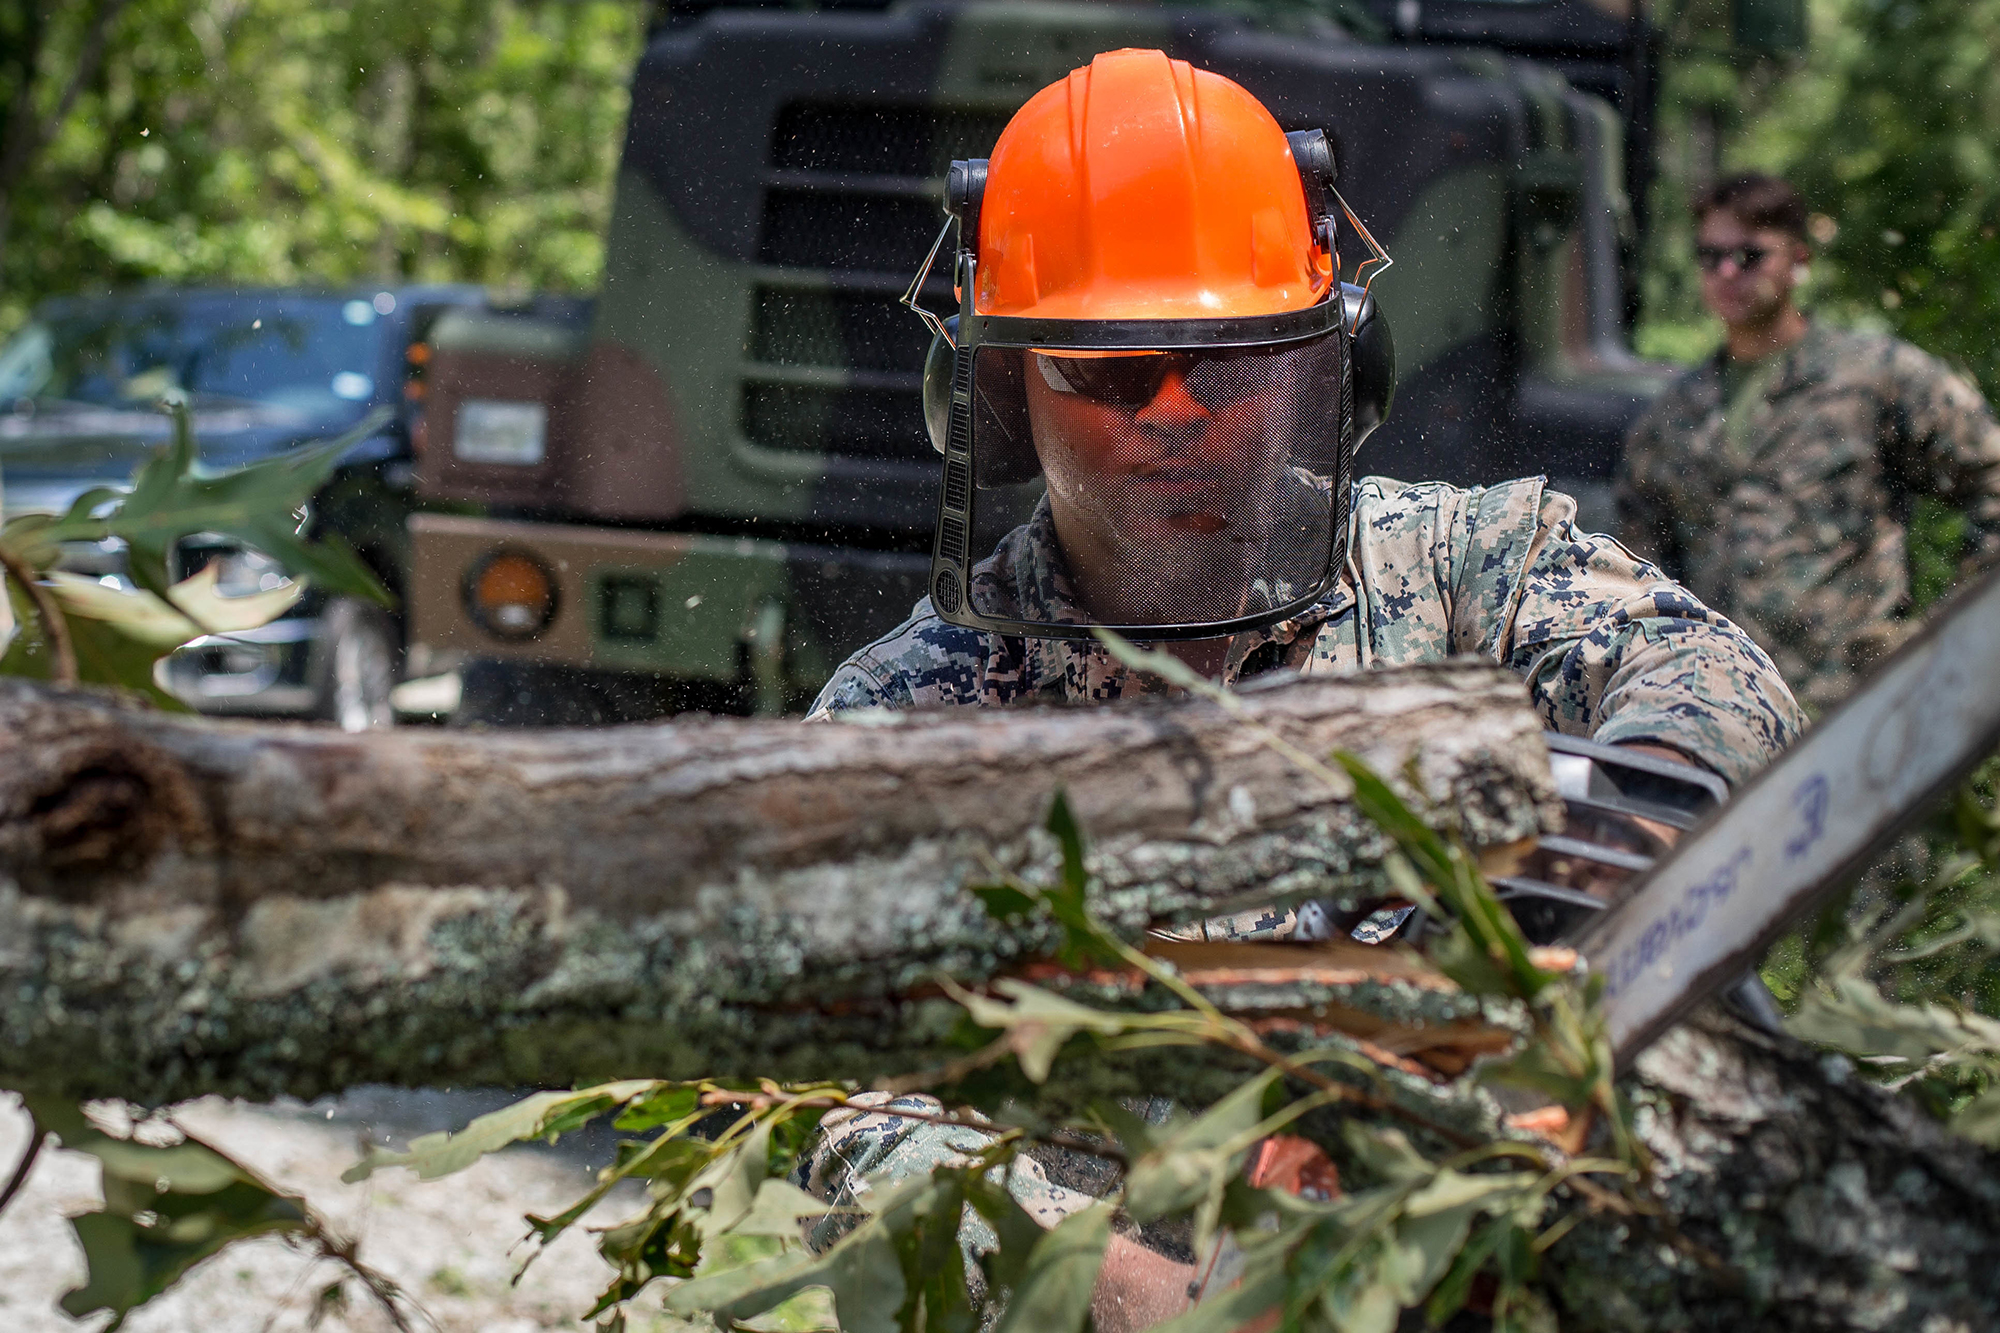 Cpl. William Butler uses a chainsaw to clear debris on a training area road at Marine Corps Air Station New River, N.C., Aug. 4, 2020, after Hurricane Isaias in order to resume normal operations. (Lance Cpl. Scott Jenkins/Marine Corps)